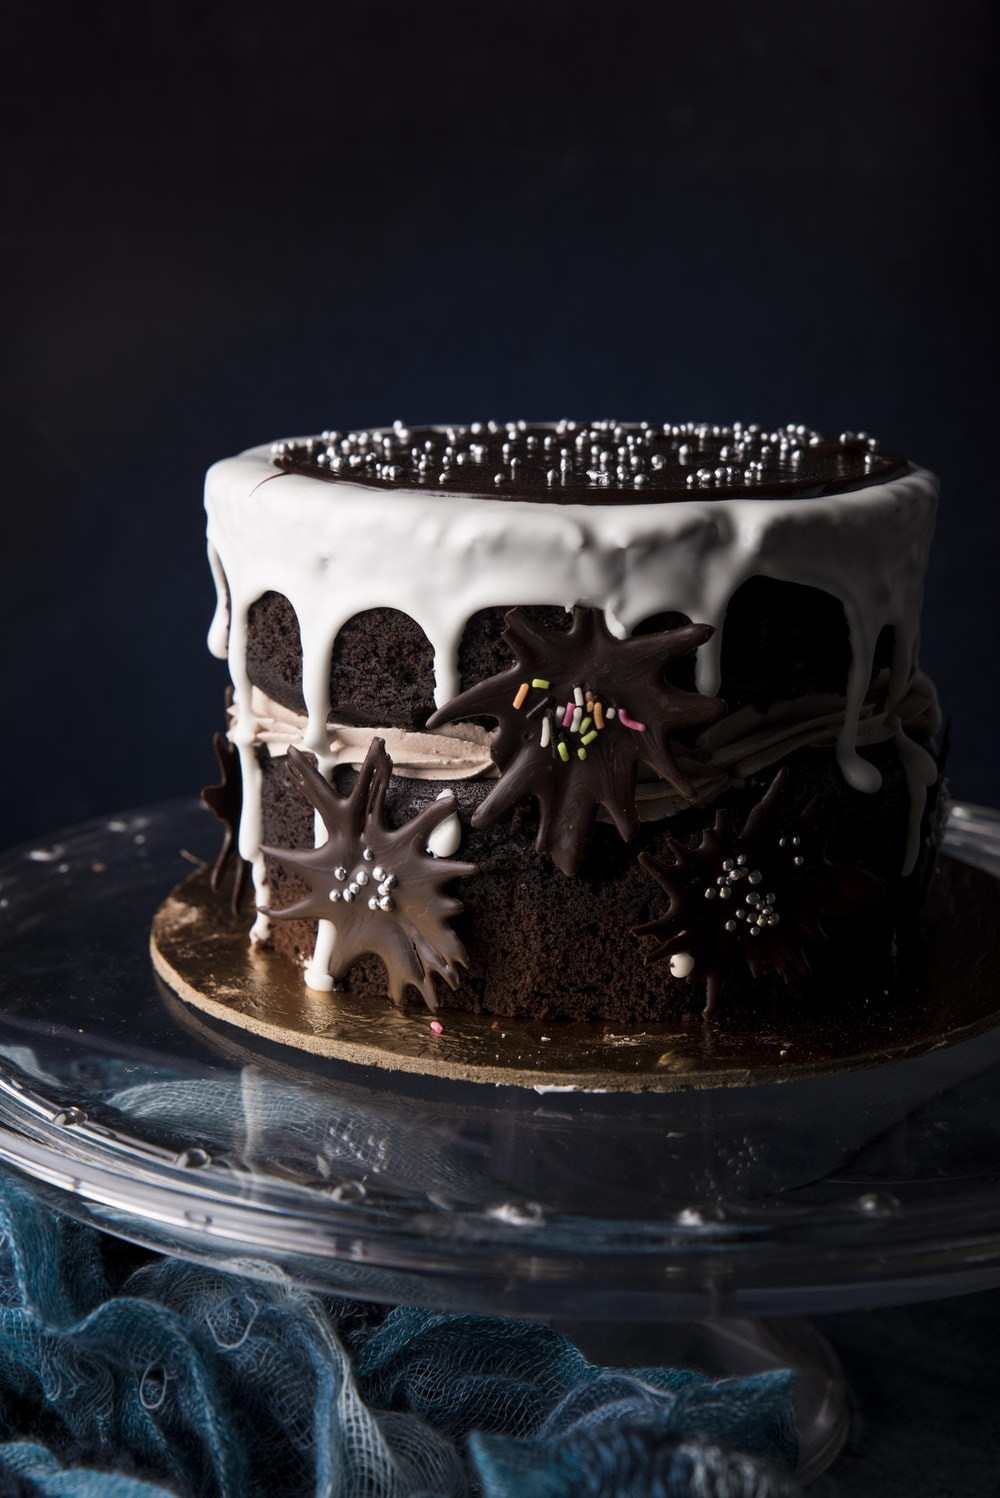 white and black cake on blue glass plate